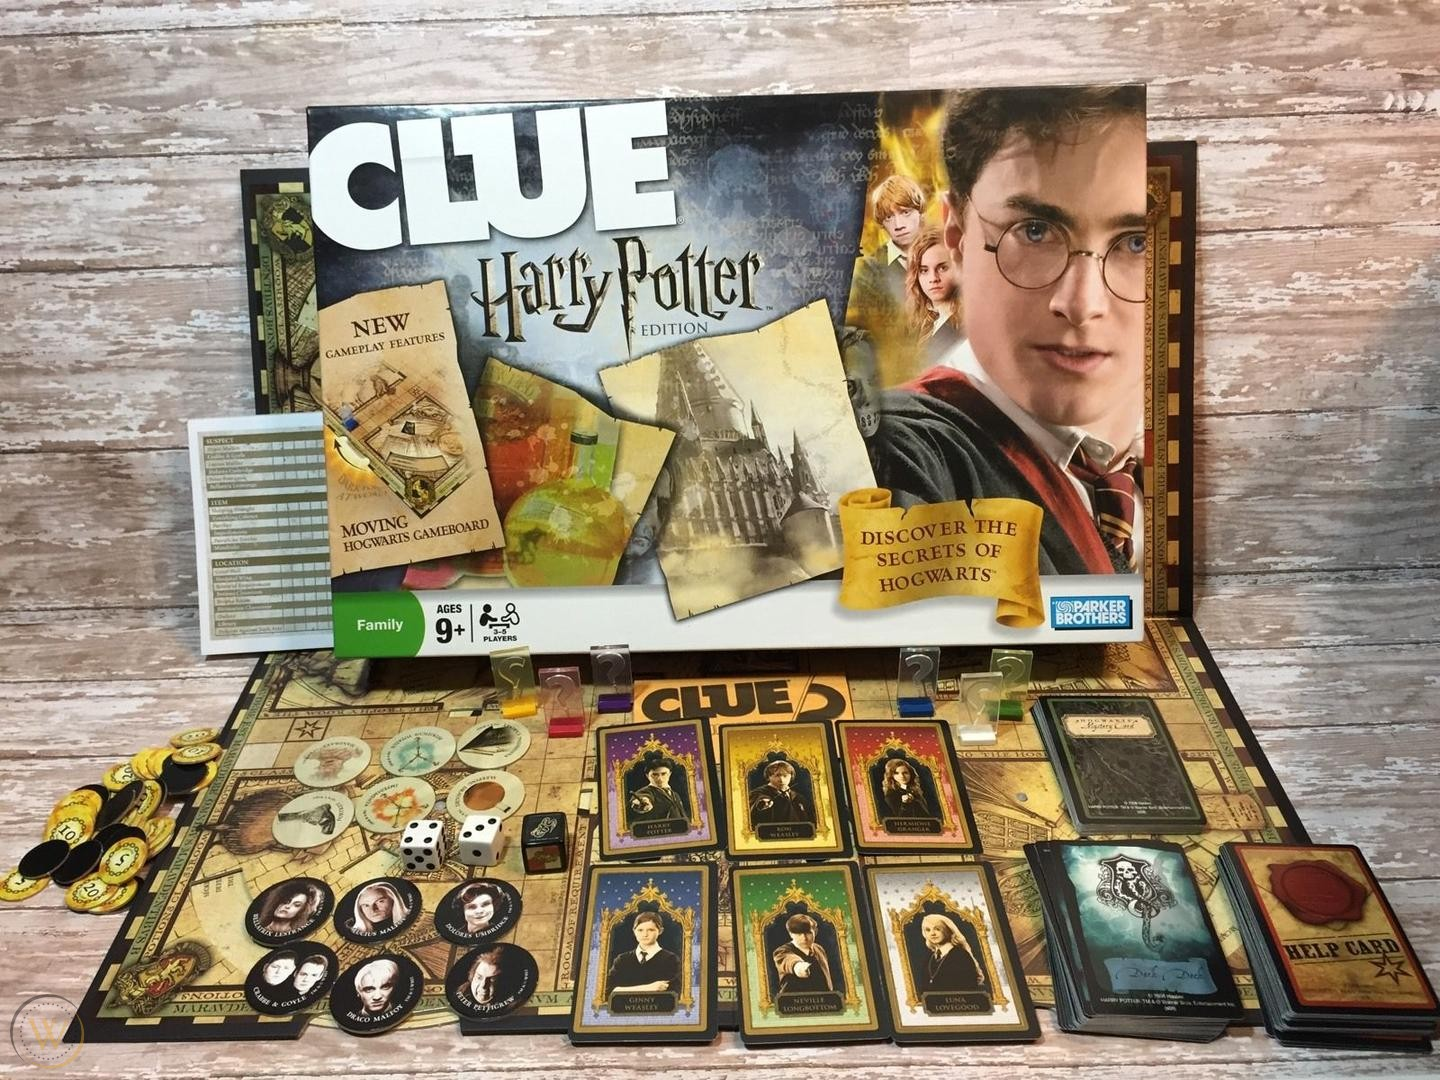 Your guide to Clue Harry Potter Edition